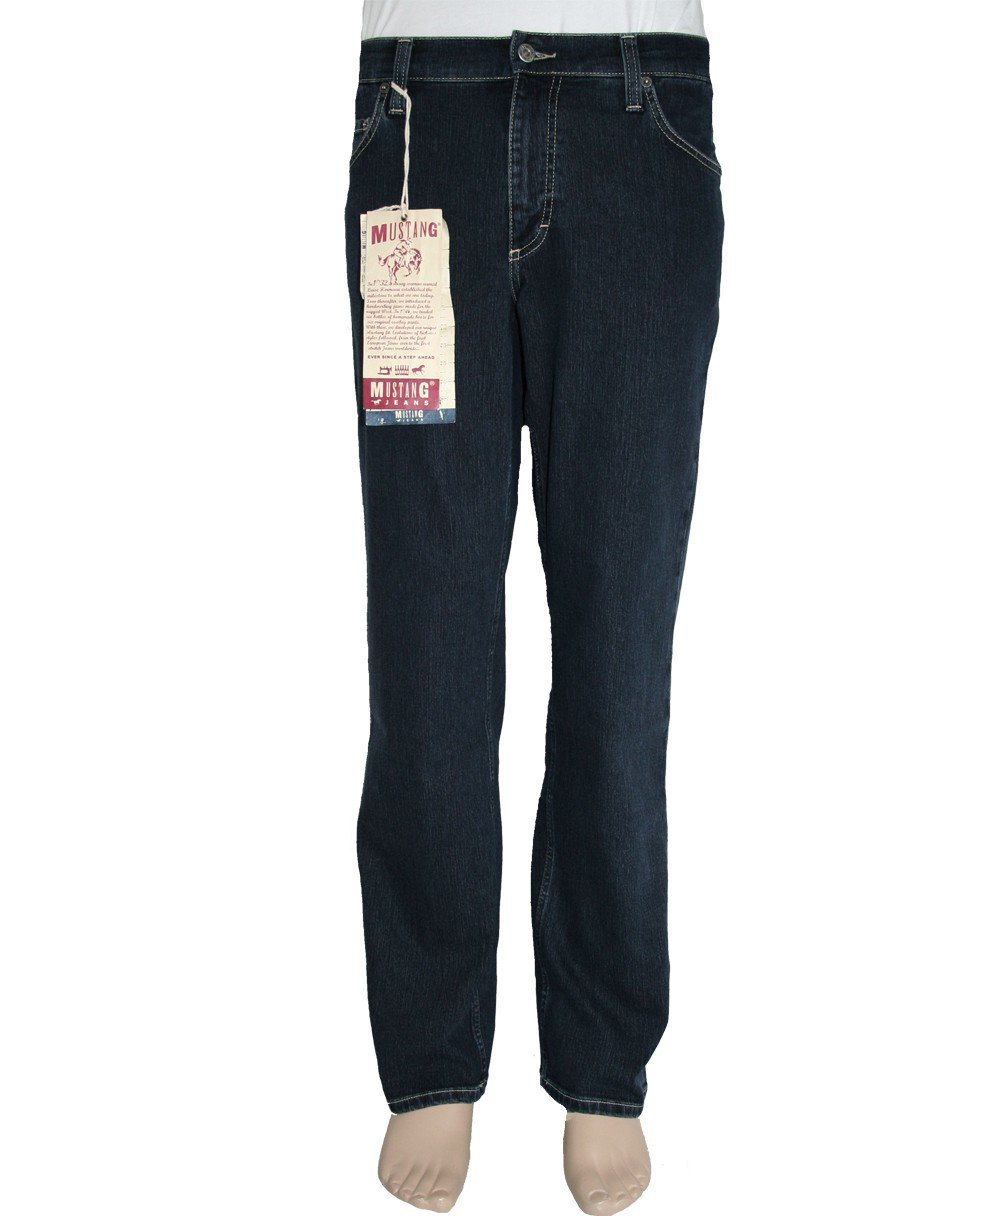 Big Sale Cheap Real Eastbay Mens Big Sur 31693169-5387 Big Sur Herrenjeans Tapered Jeans Mustang Footlocker Finishline Outlet Best Prices Pay With Paypal Sale Online avoFu